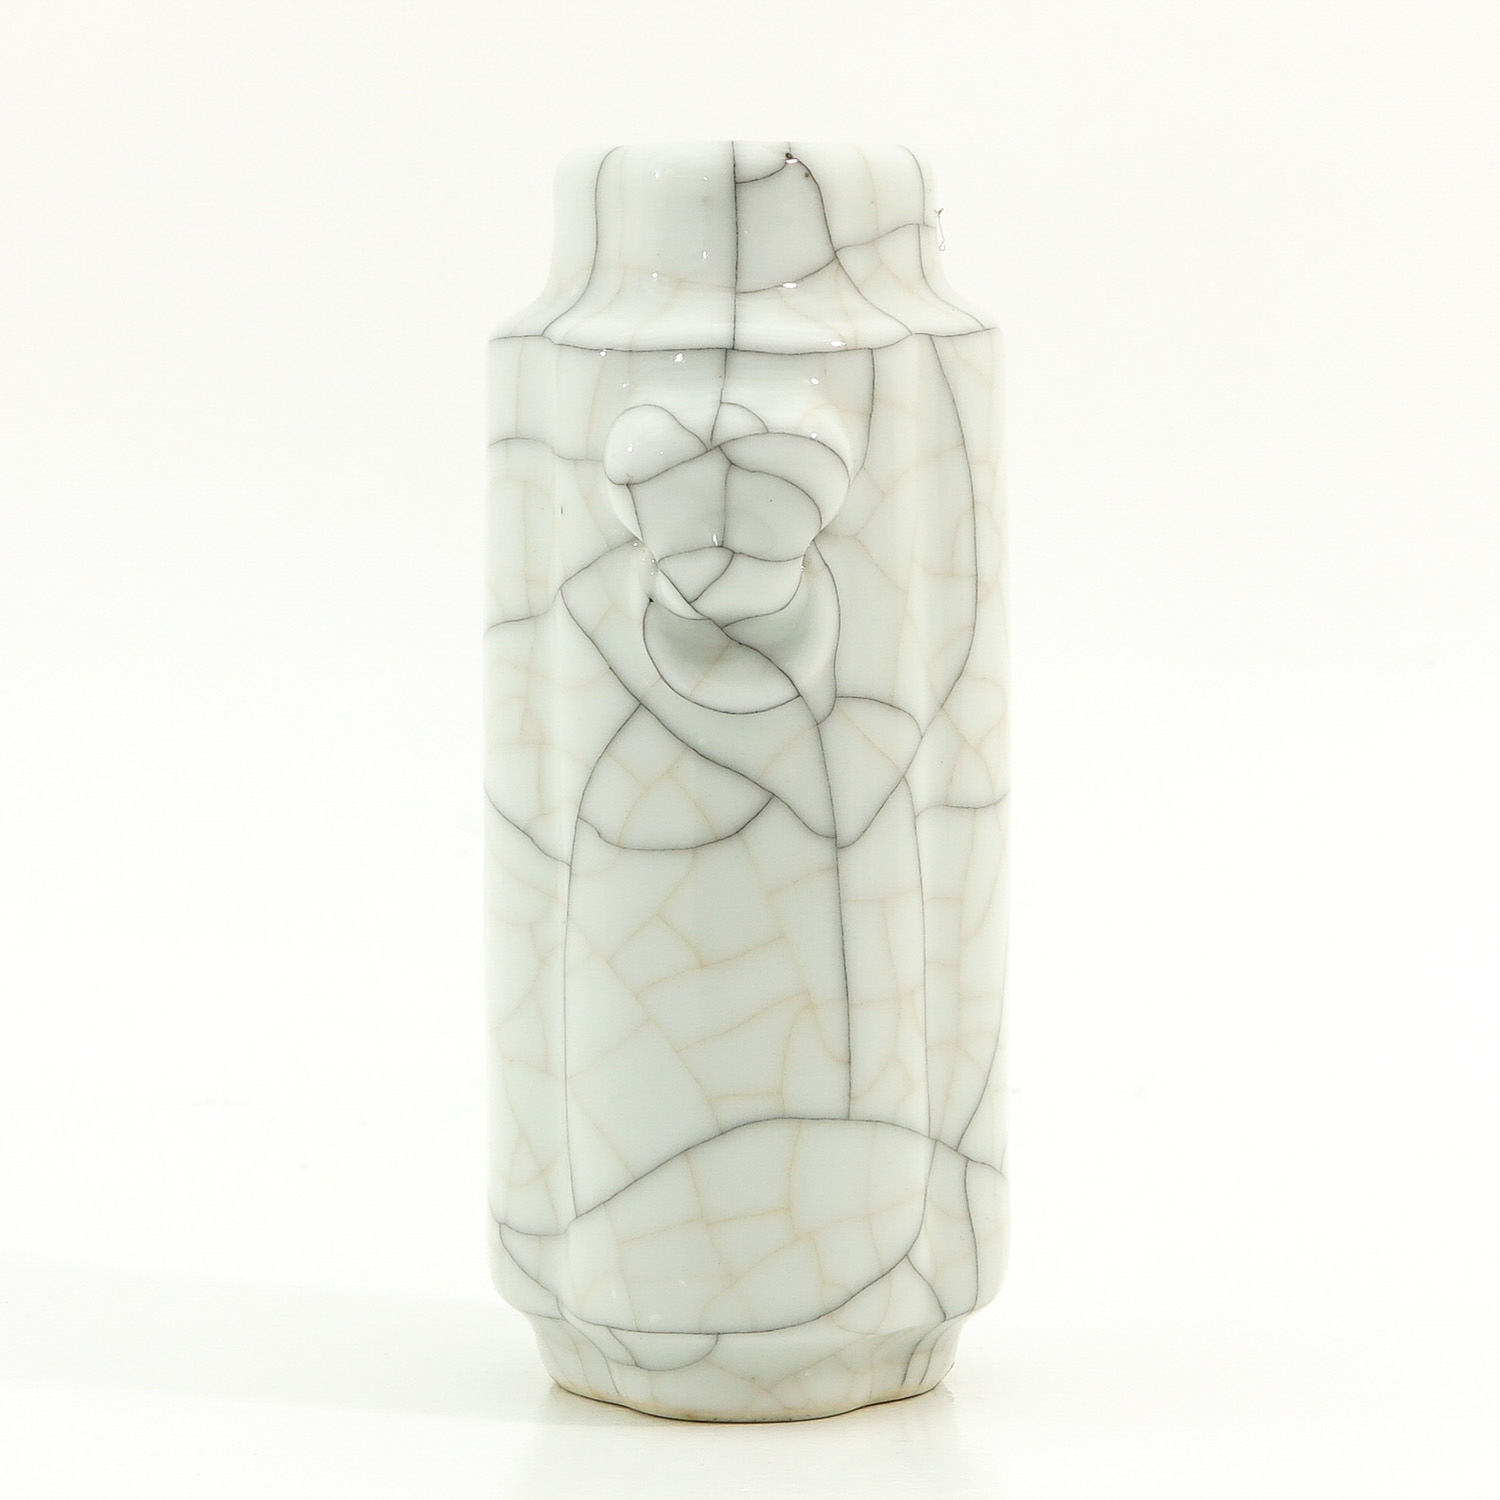 A Crackle Decor Vase - Image 2 of 9